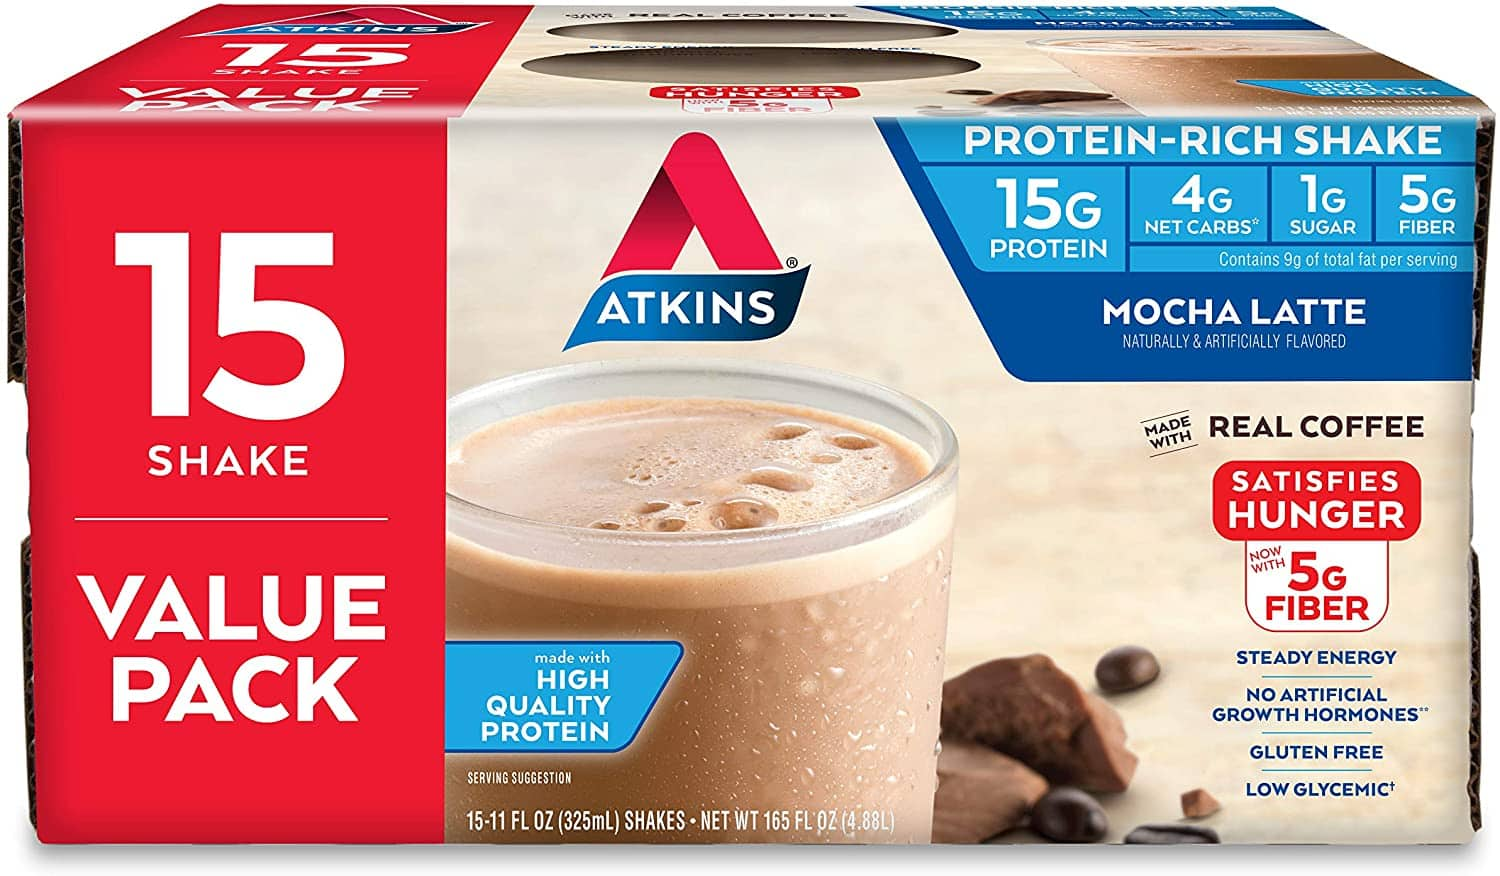 Atkins Keto Shakes, Bars and Meal Replacements - Prime Day Deal with FS for Prime Members $14.31